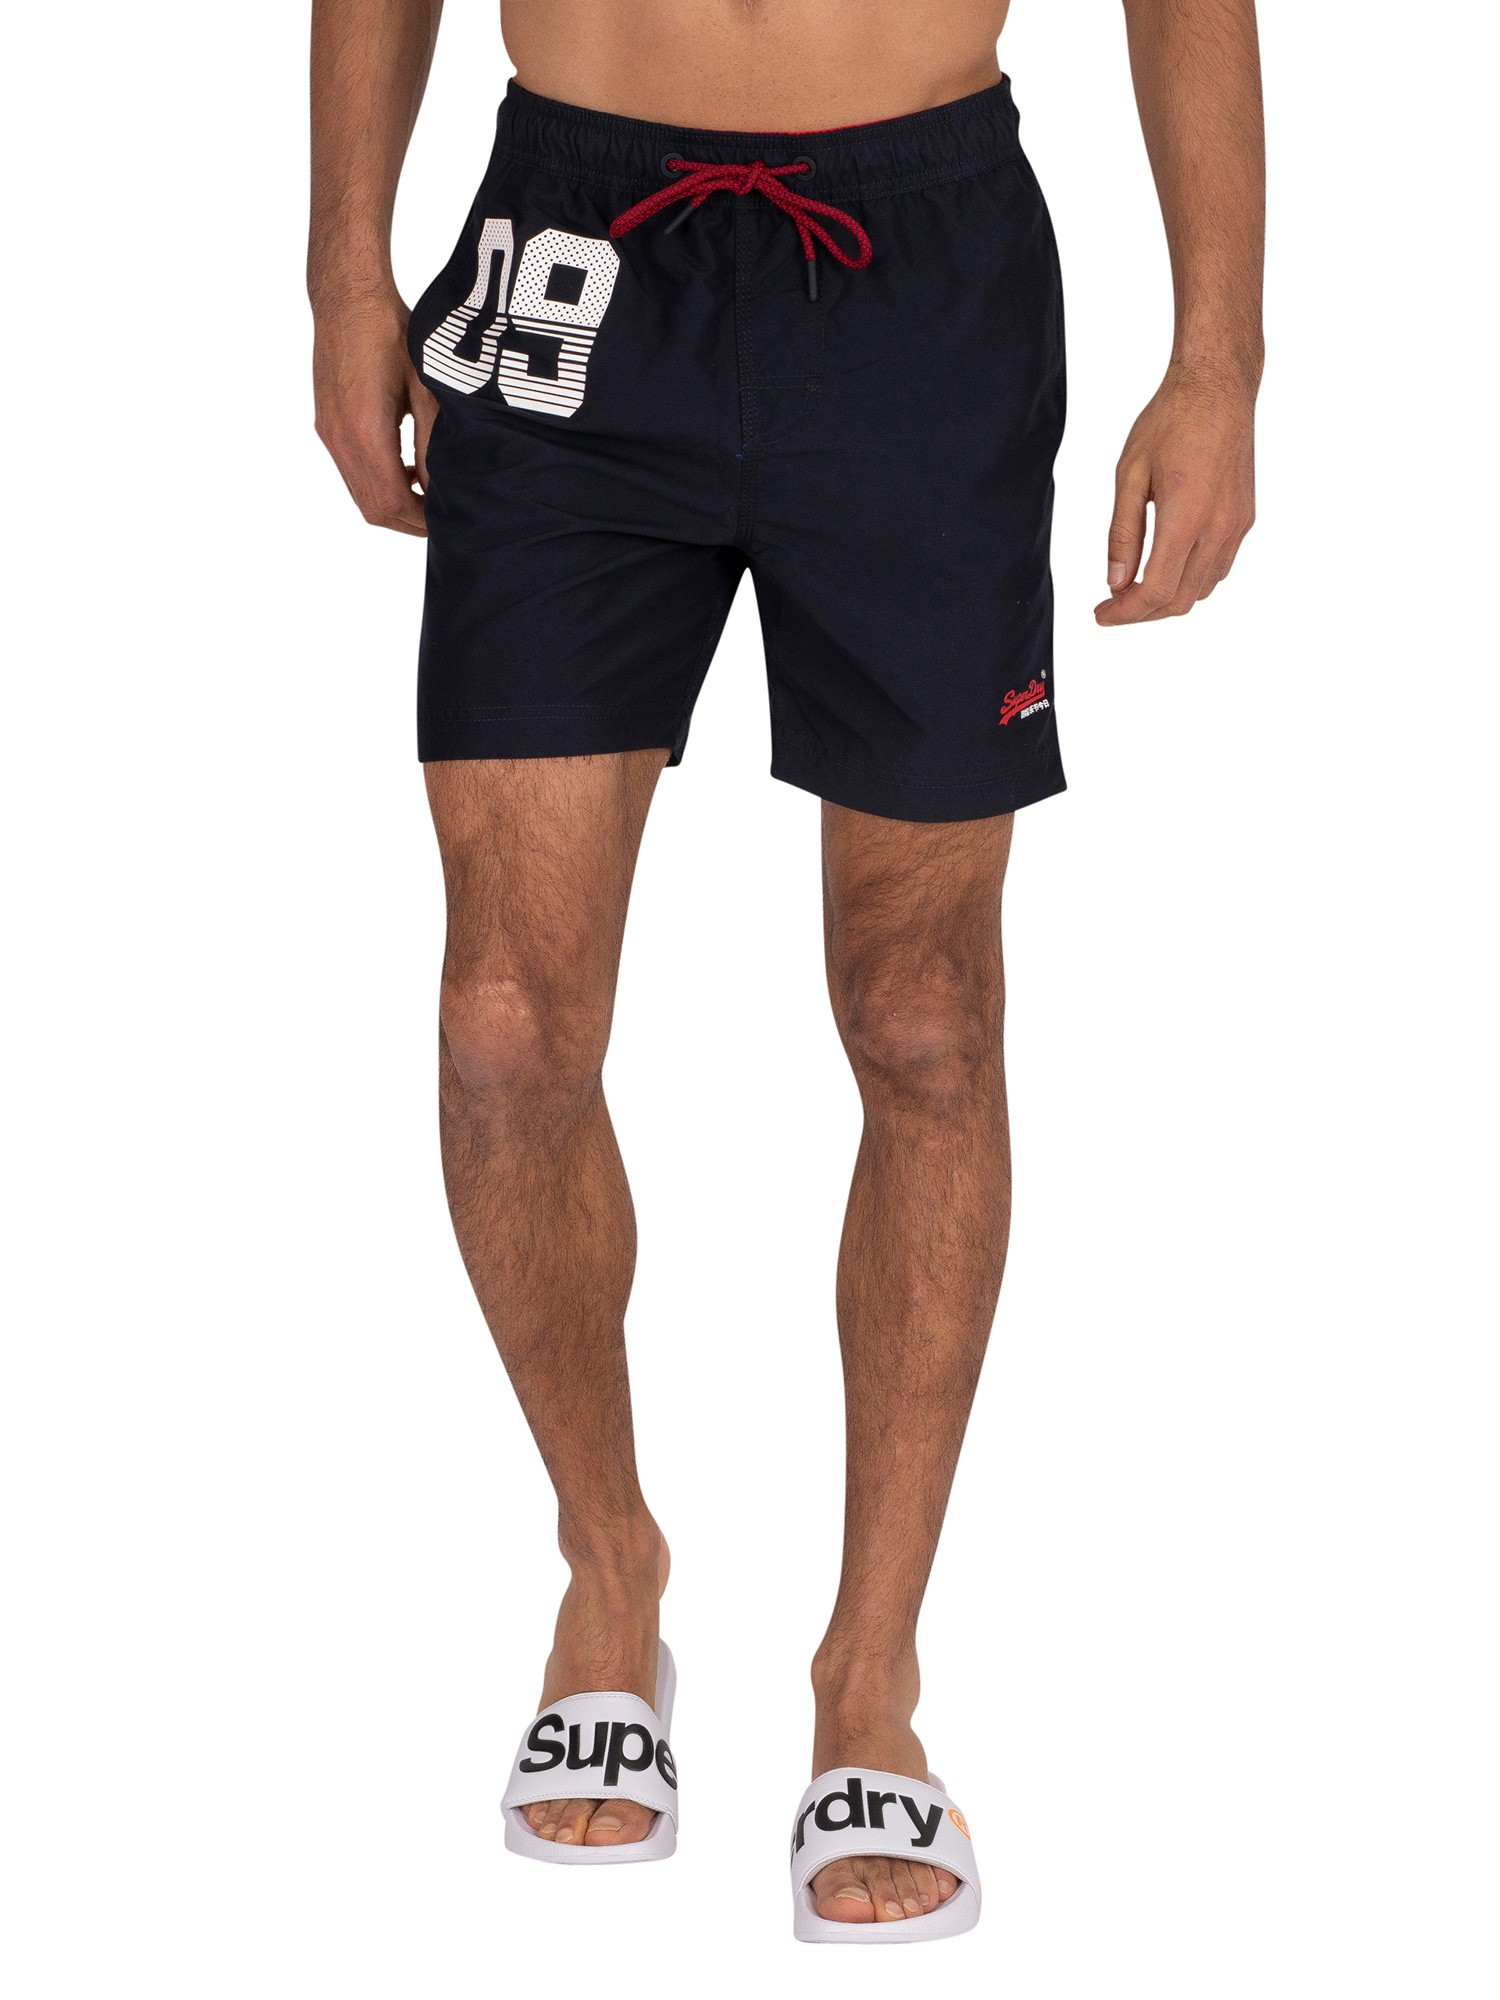 Superdry Swimshorts Water Polo Orange M30018AT VQH order